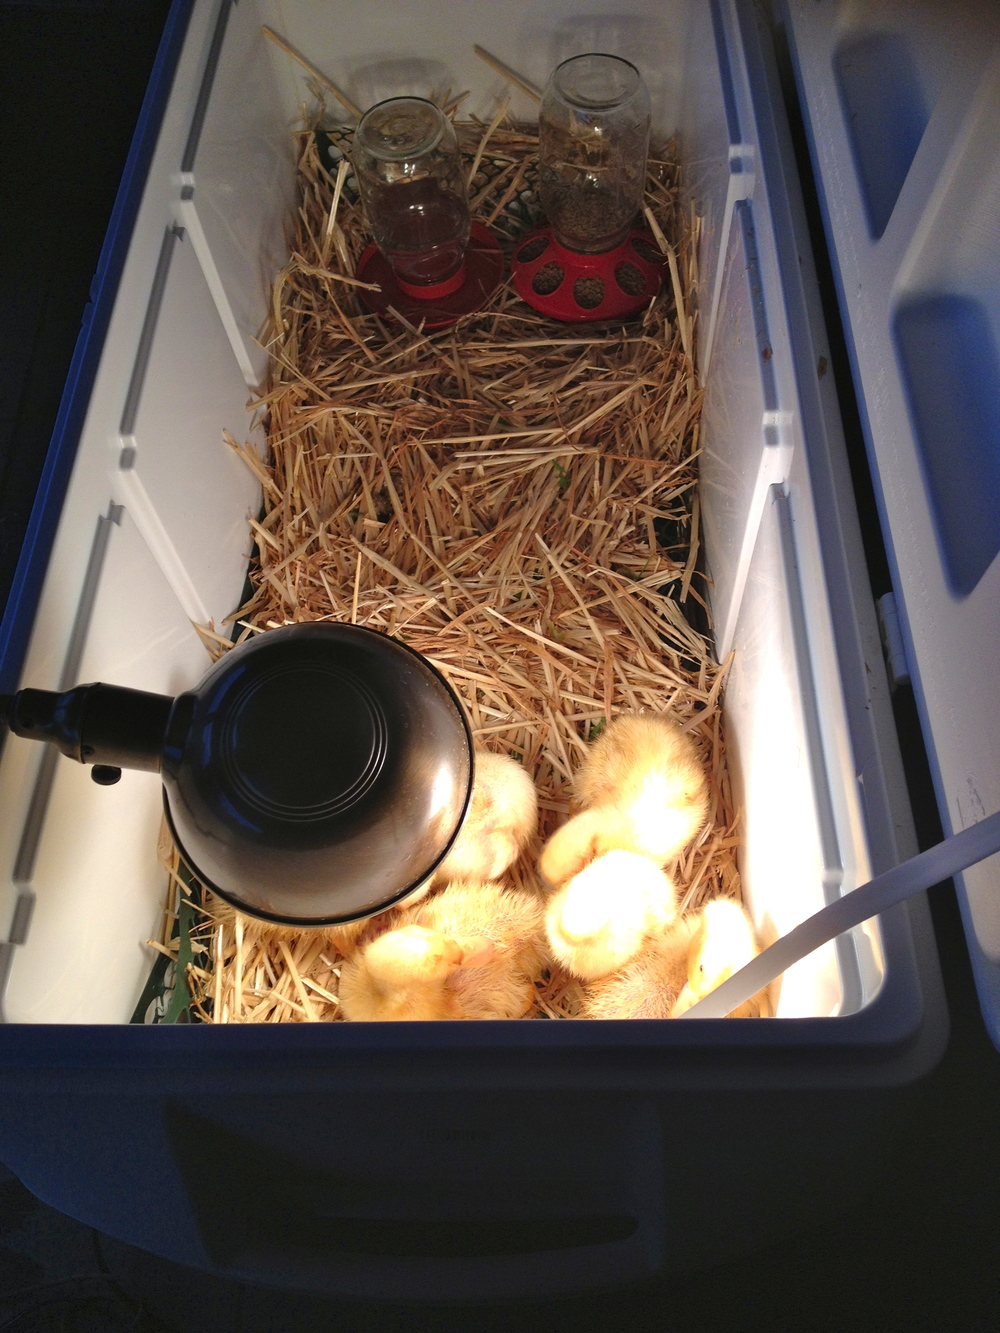 At night with their heat lamp.